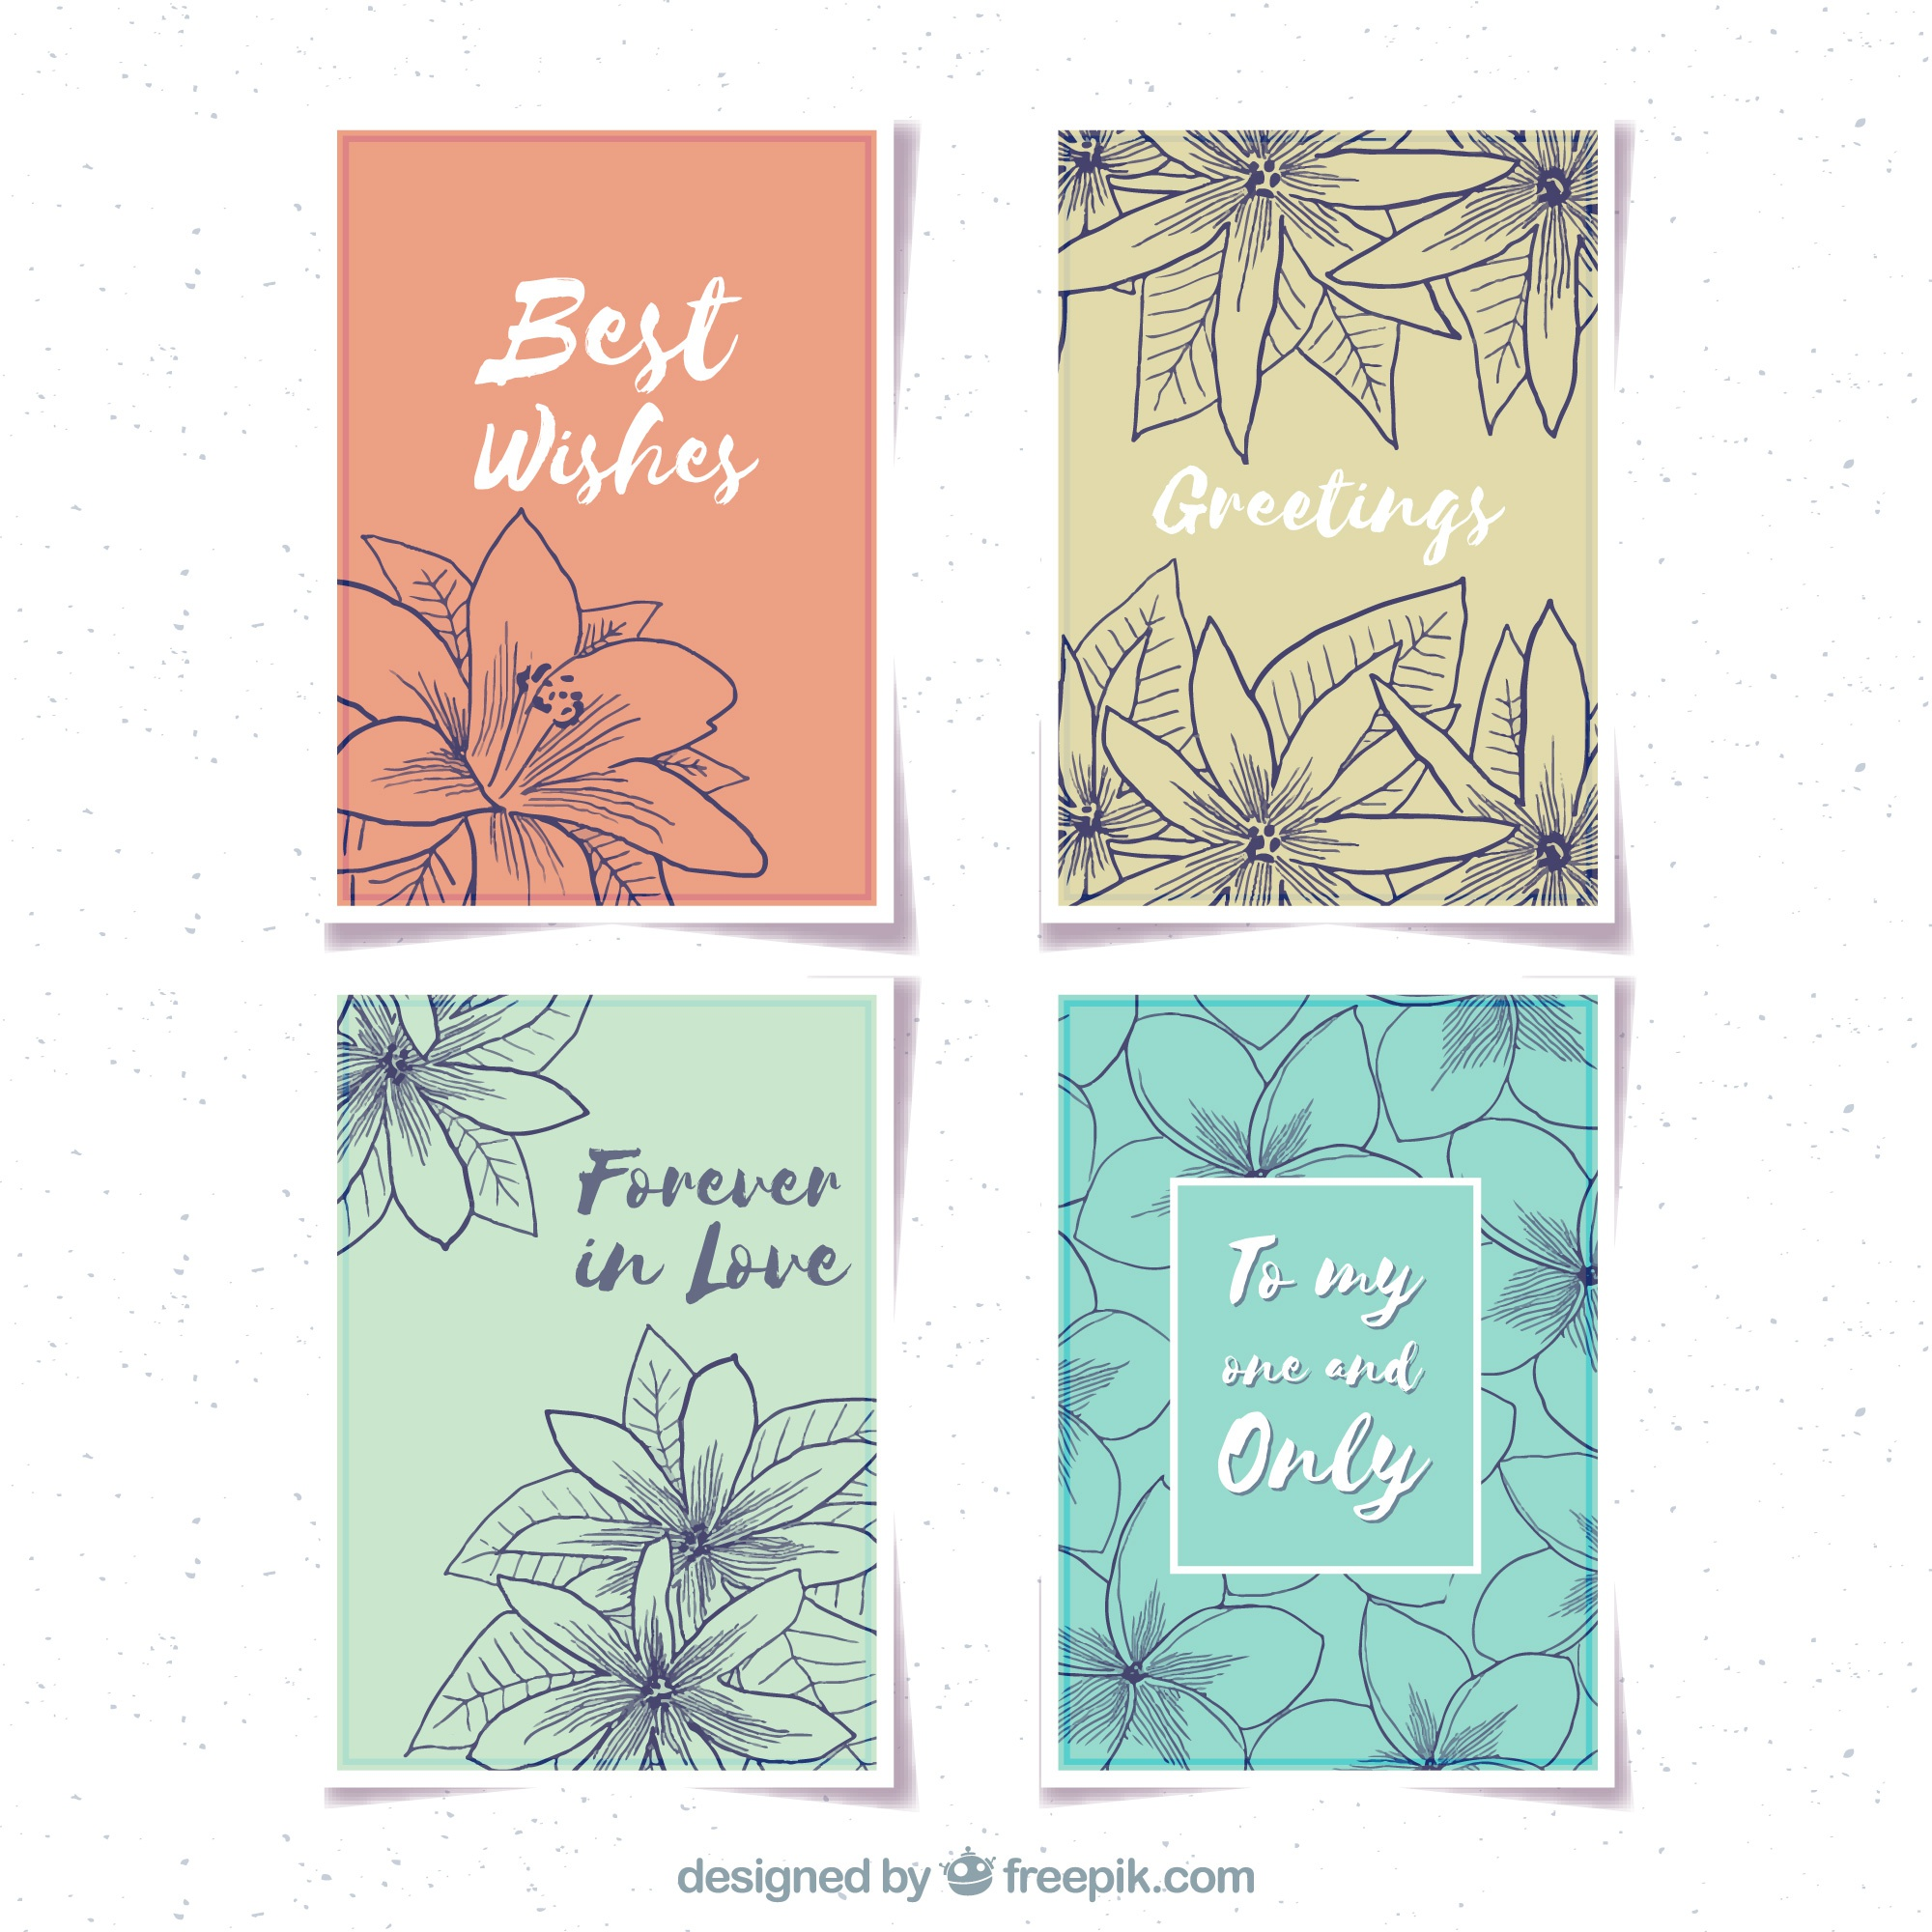 Pretty vintage cards with jasmine sketches